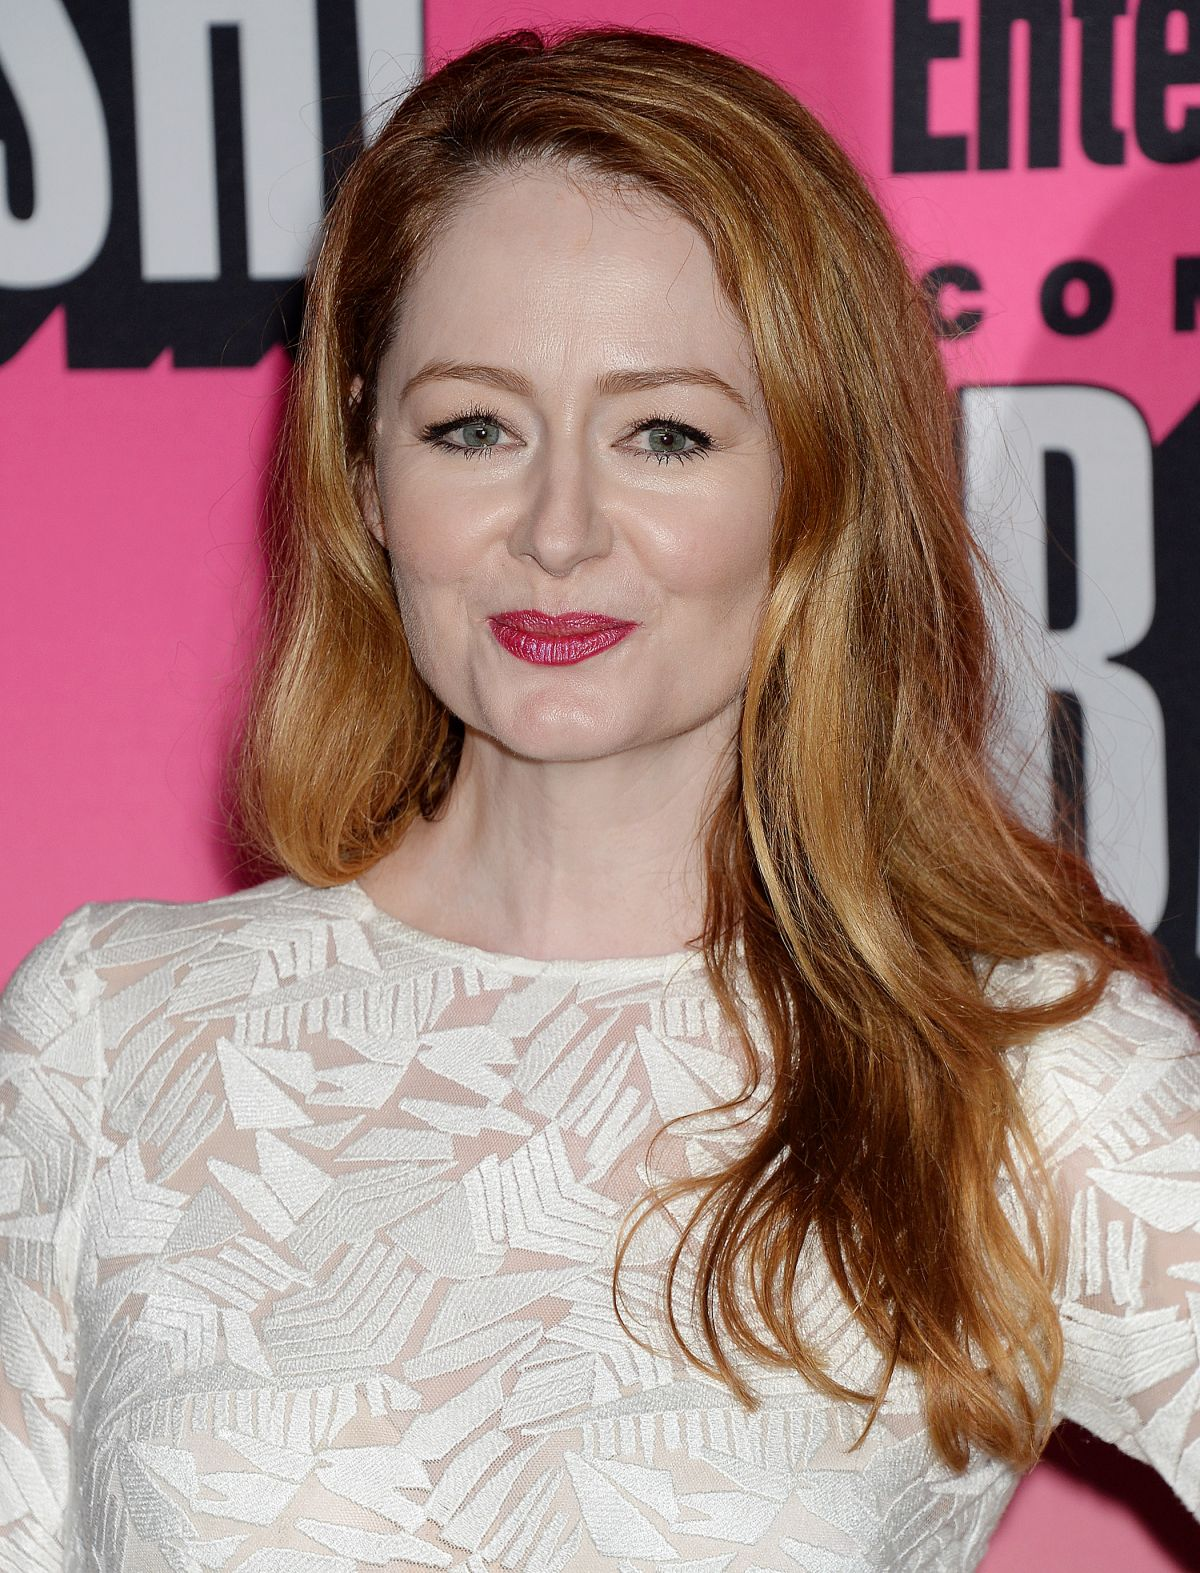 MIRANDA OTTO at Entertainment Weekly